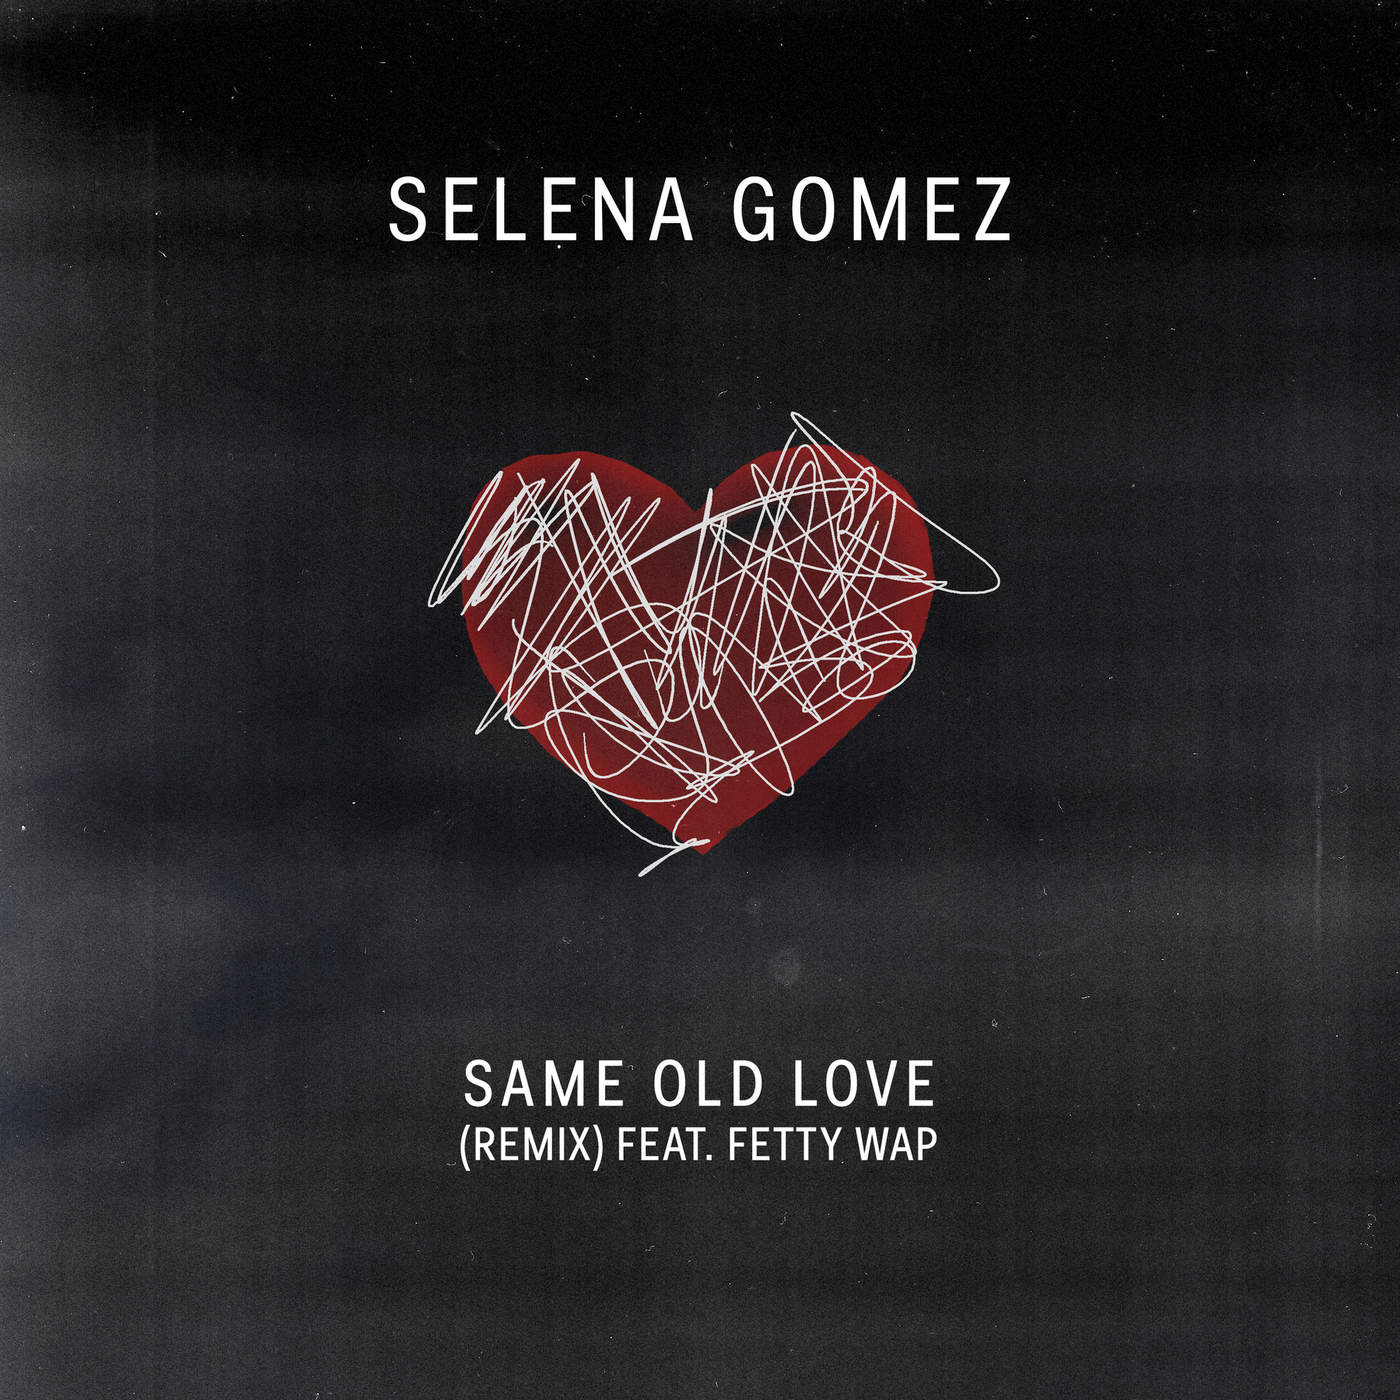 Selena Gomez - Same Old Love (Remix) [feat. Fetty Wap] - Single Cover